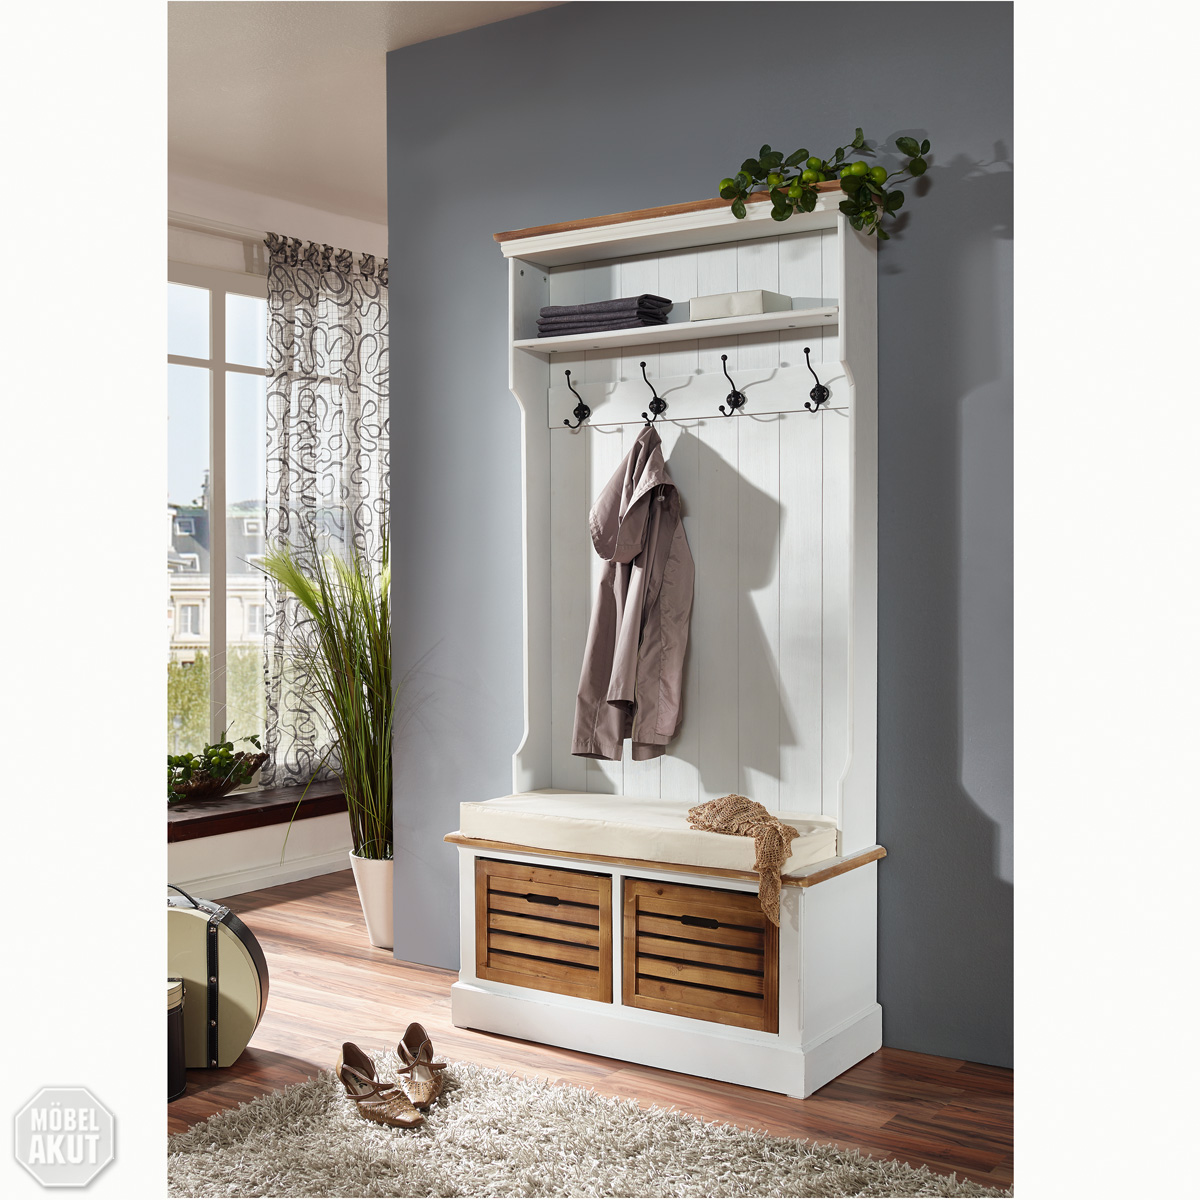 garderobe paris in paulownia holz weiss vintage look landhaus. Black Bedroom Furniture Sets. Home Design Ideas